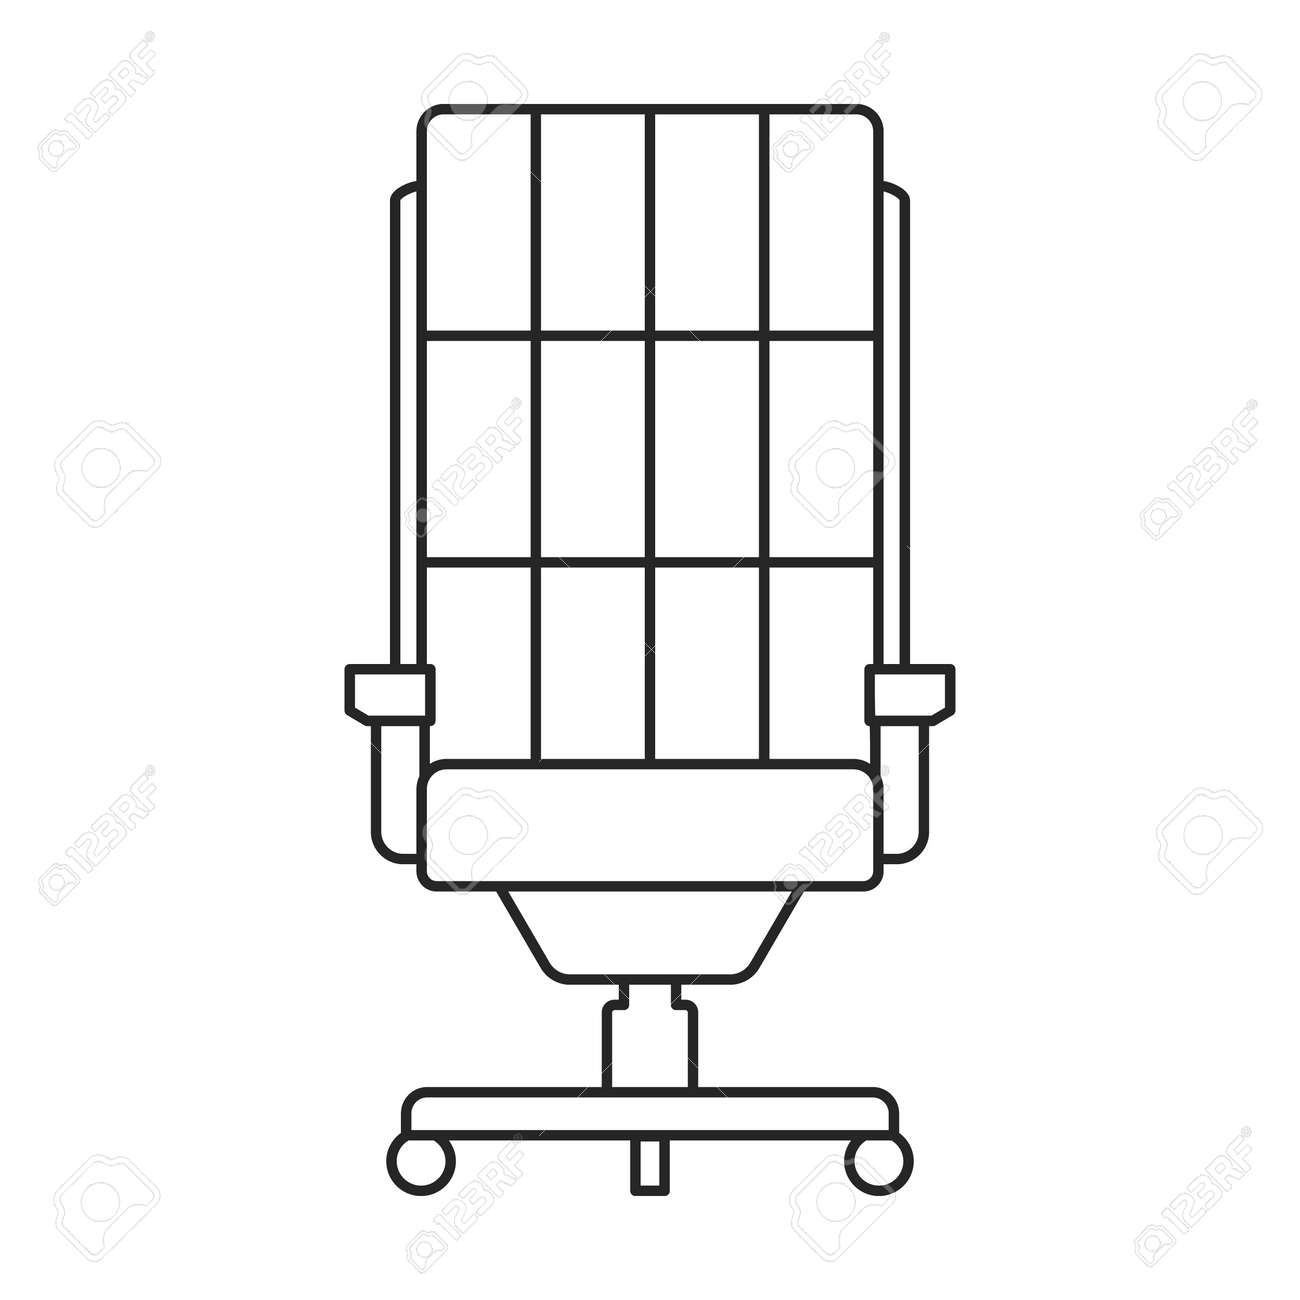 Chair office vector outline icon. Vector illustration armchair on white background. Isolated outline illustration icon of chair office. - 171813193